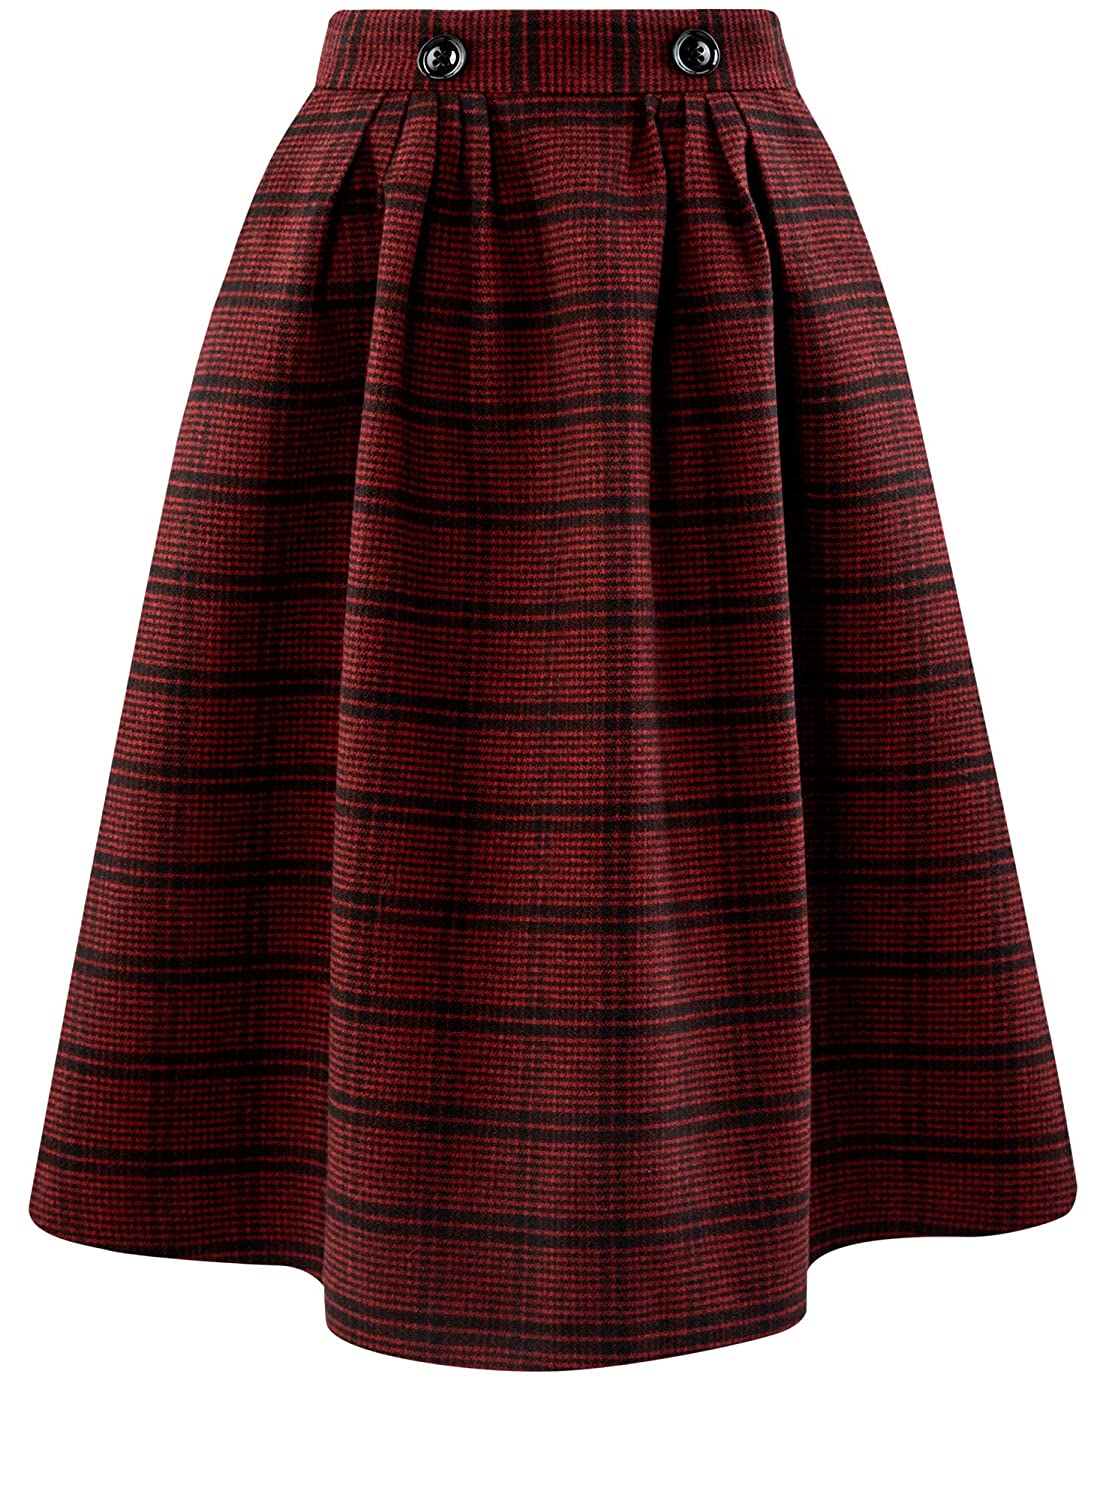 7b9ccb3f1 oodji Ultra Women's Midi Skirt in Heavyweight Fabric with Pockets:  Amazon.co.uk: Clothing